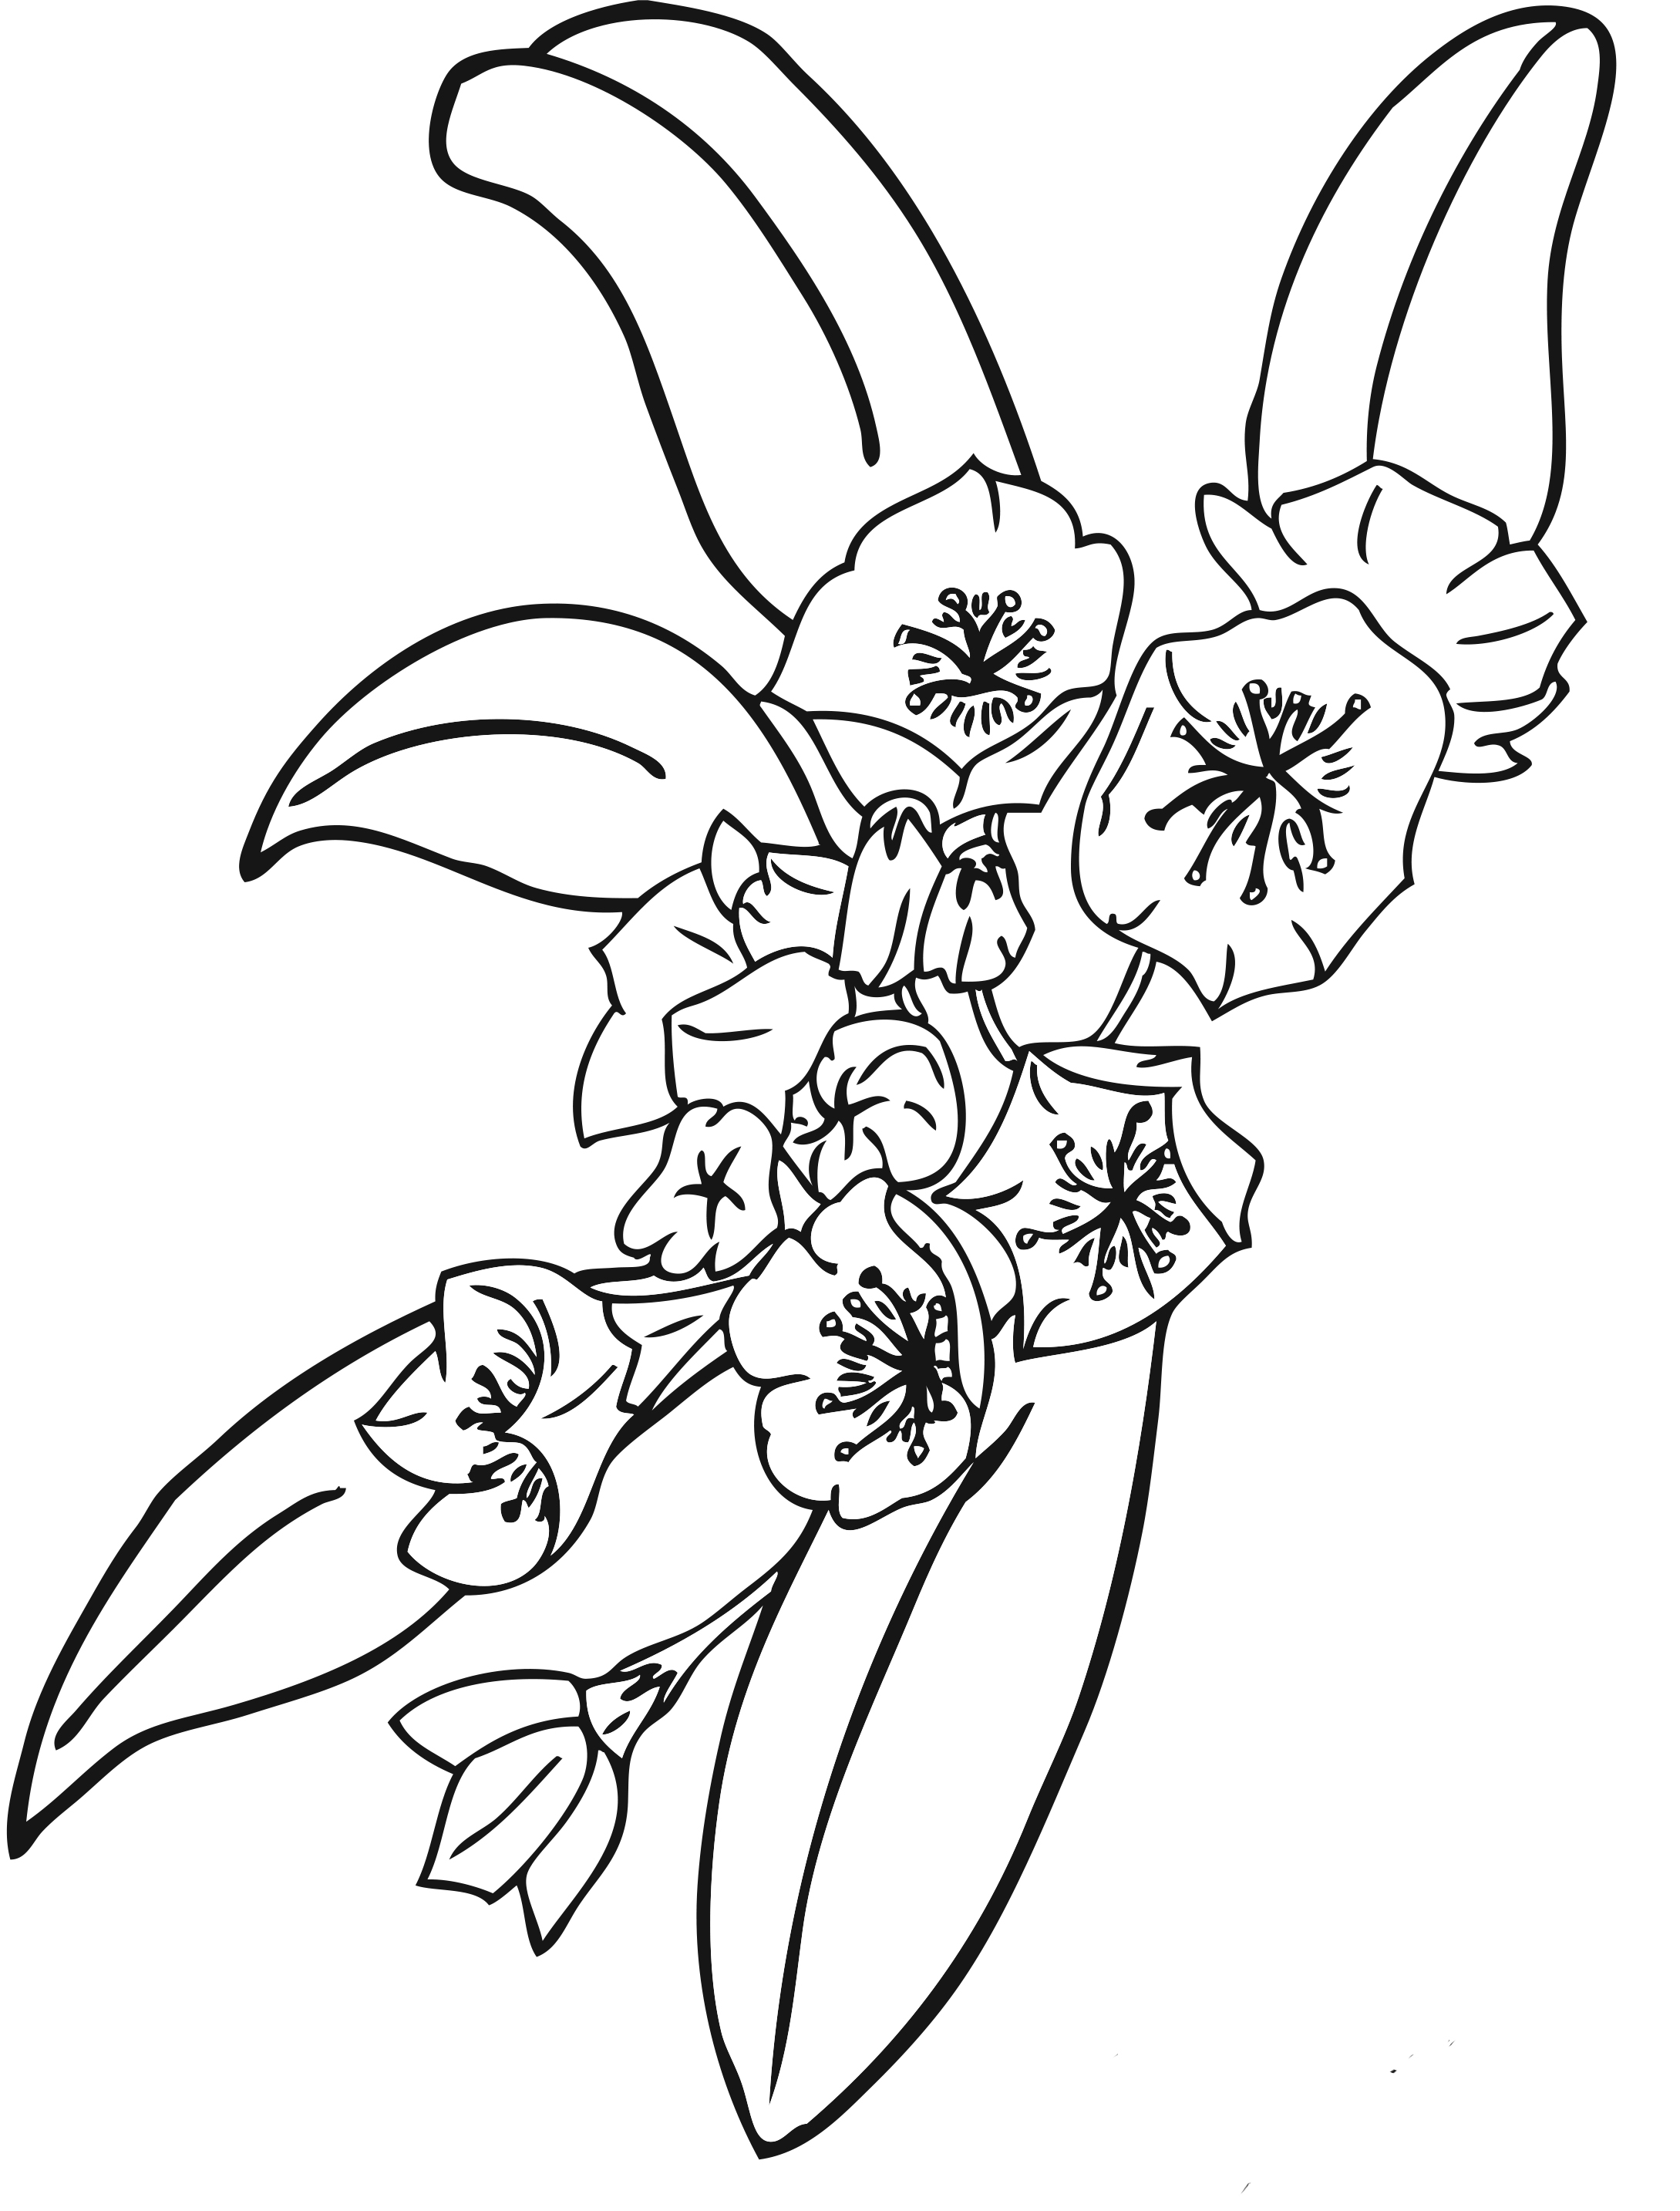 printable flowers to color summer flowers printable coloring pages free large images printable to flowers color